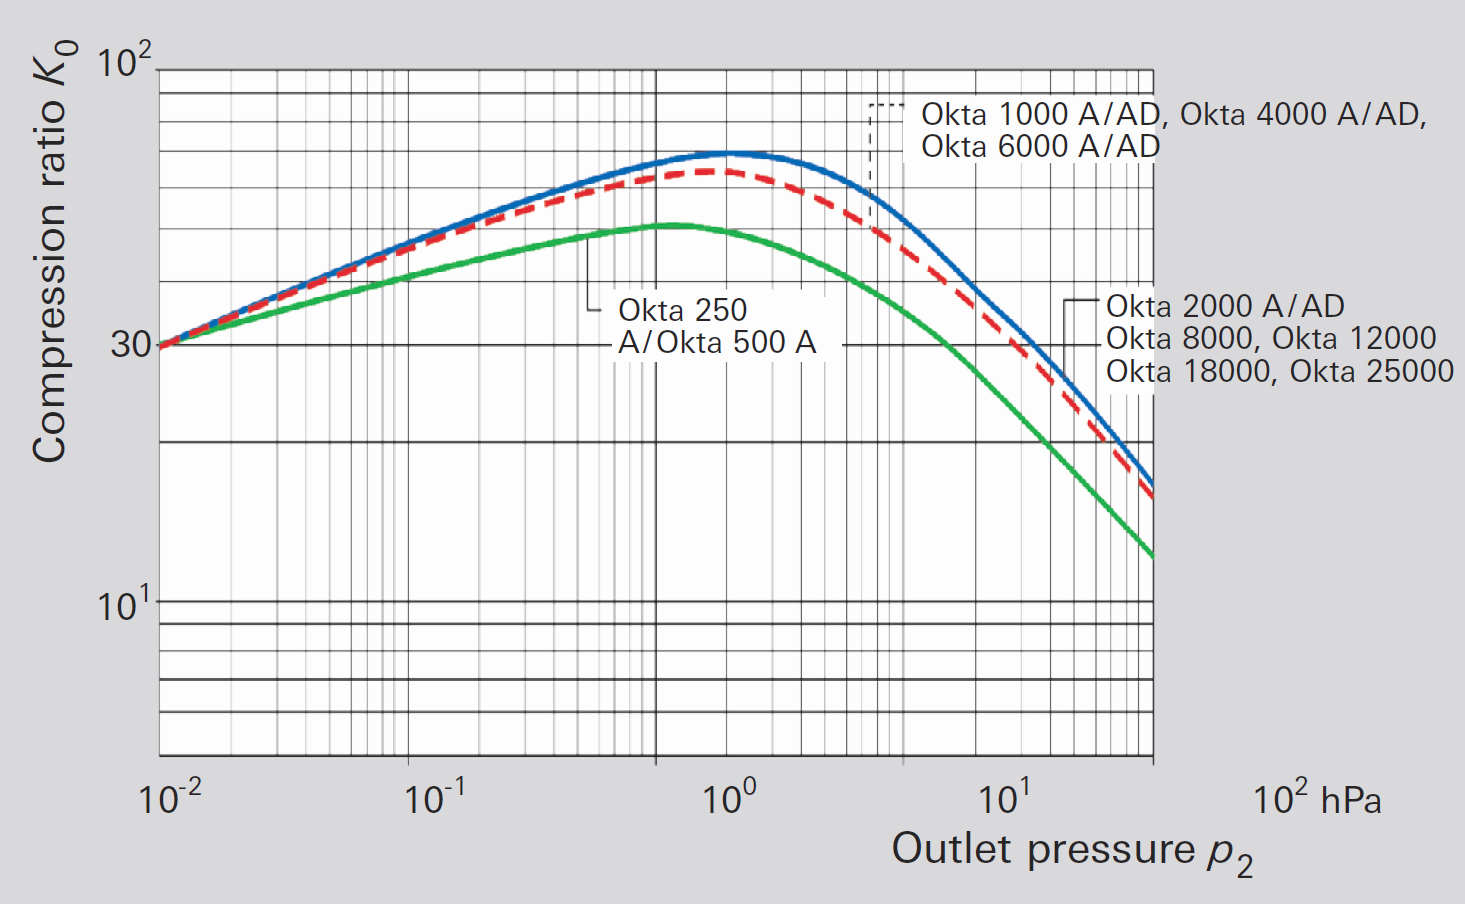 No-load compression ratio for air for Roots pumps